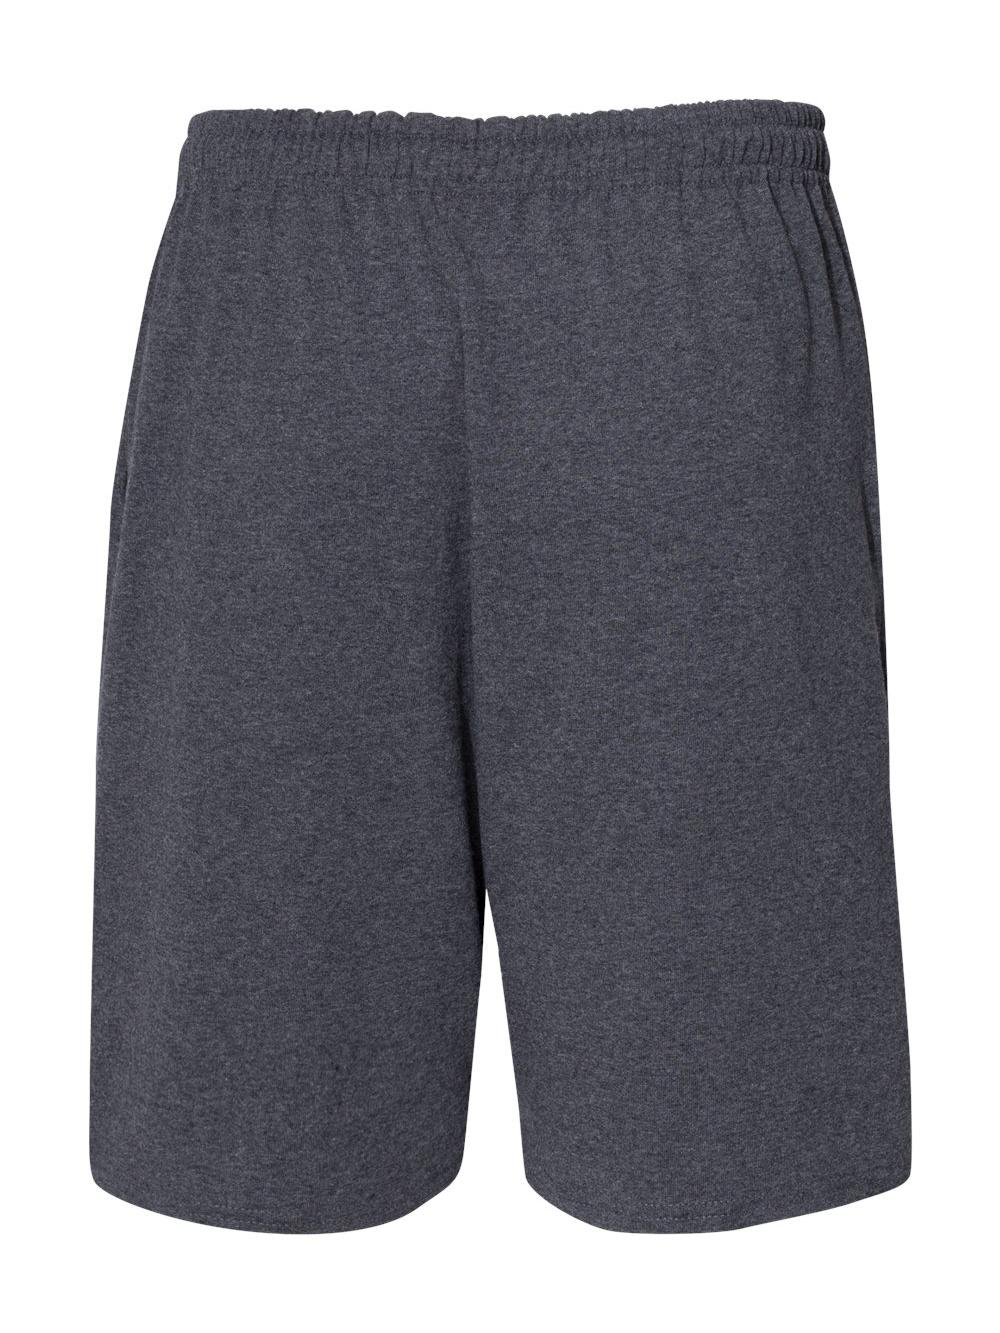 Russell-Athletic-Essential-Jersey-Cotton-Shorts-with-Pockets-25843M thumbnail 9